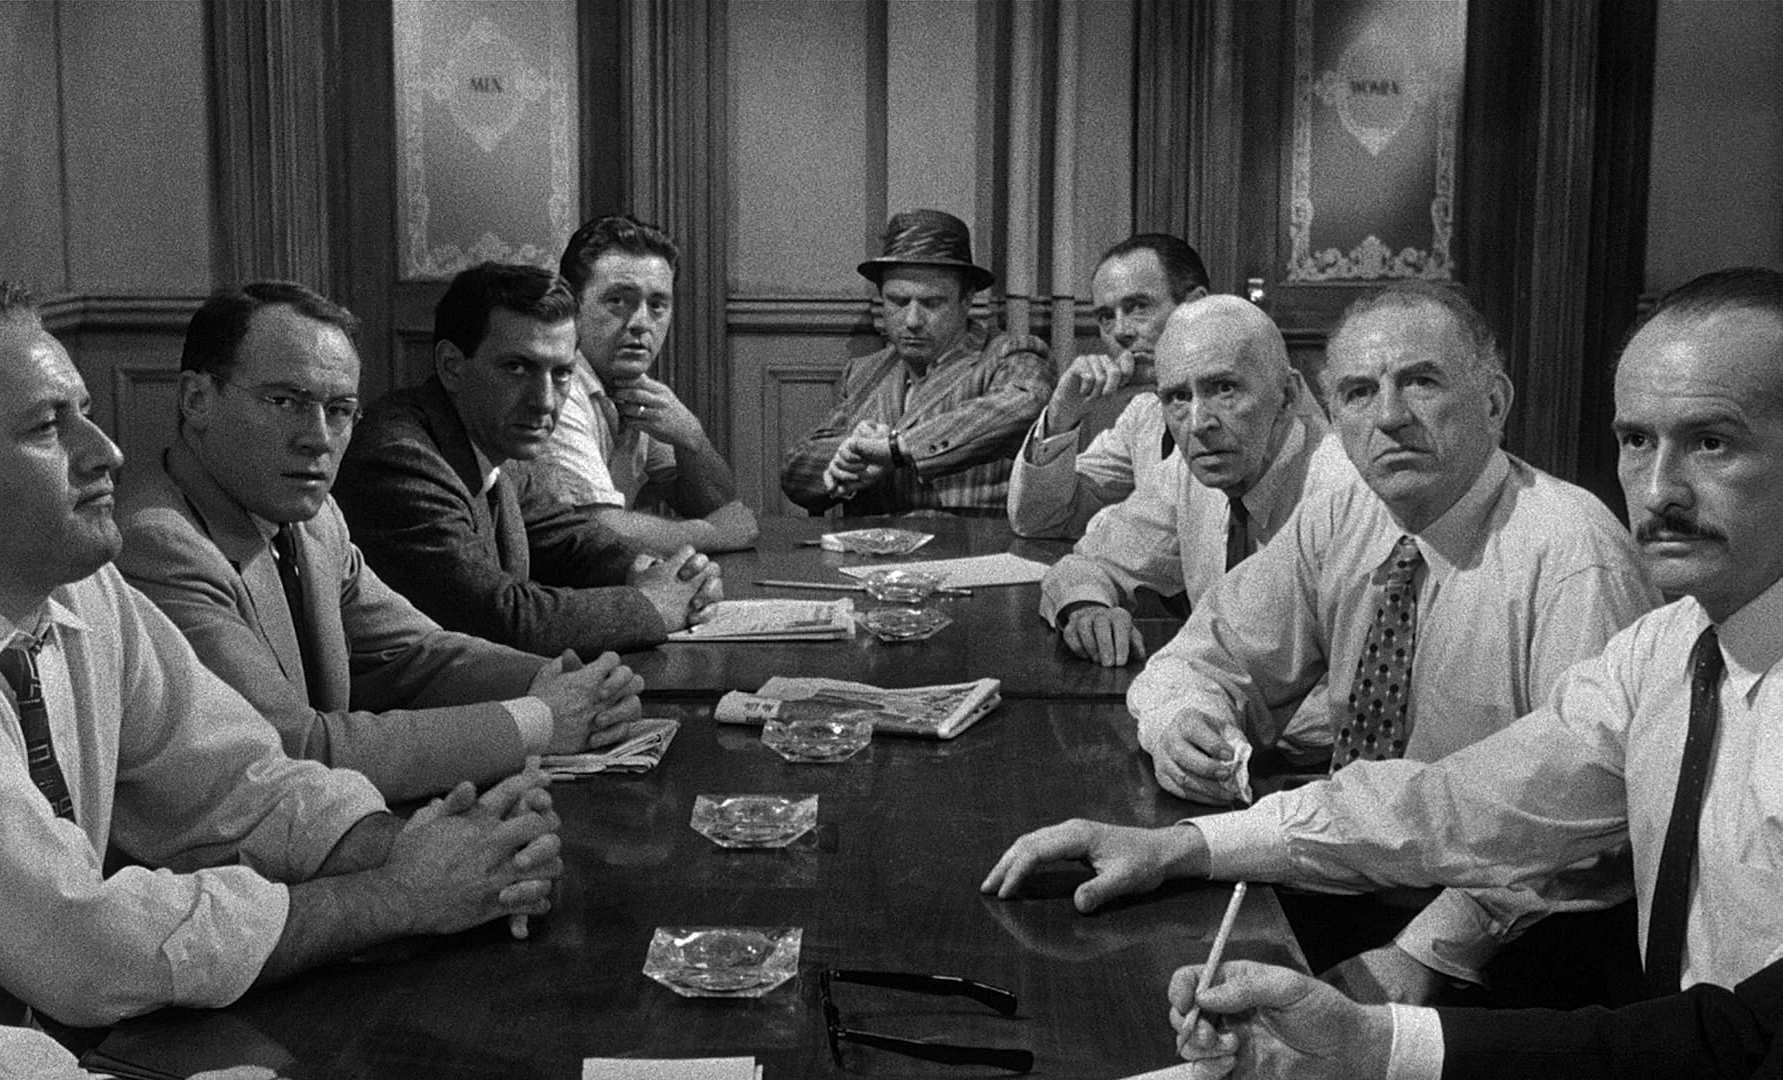 12 angry men jury characters Foreman of the jury: a small, petty man, the foreman is impressed with the  authority he has and handles himself quite formally he is not overly bright but is .